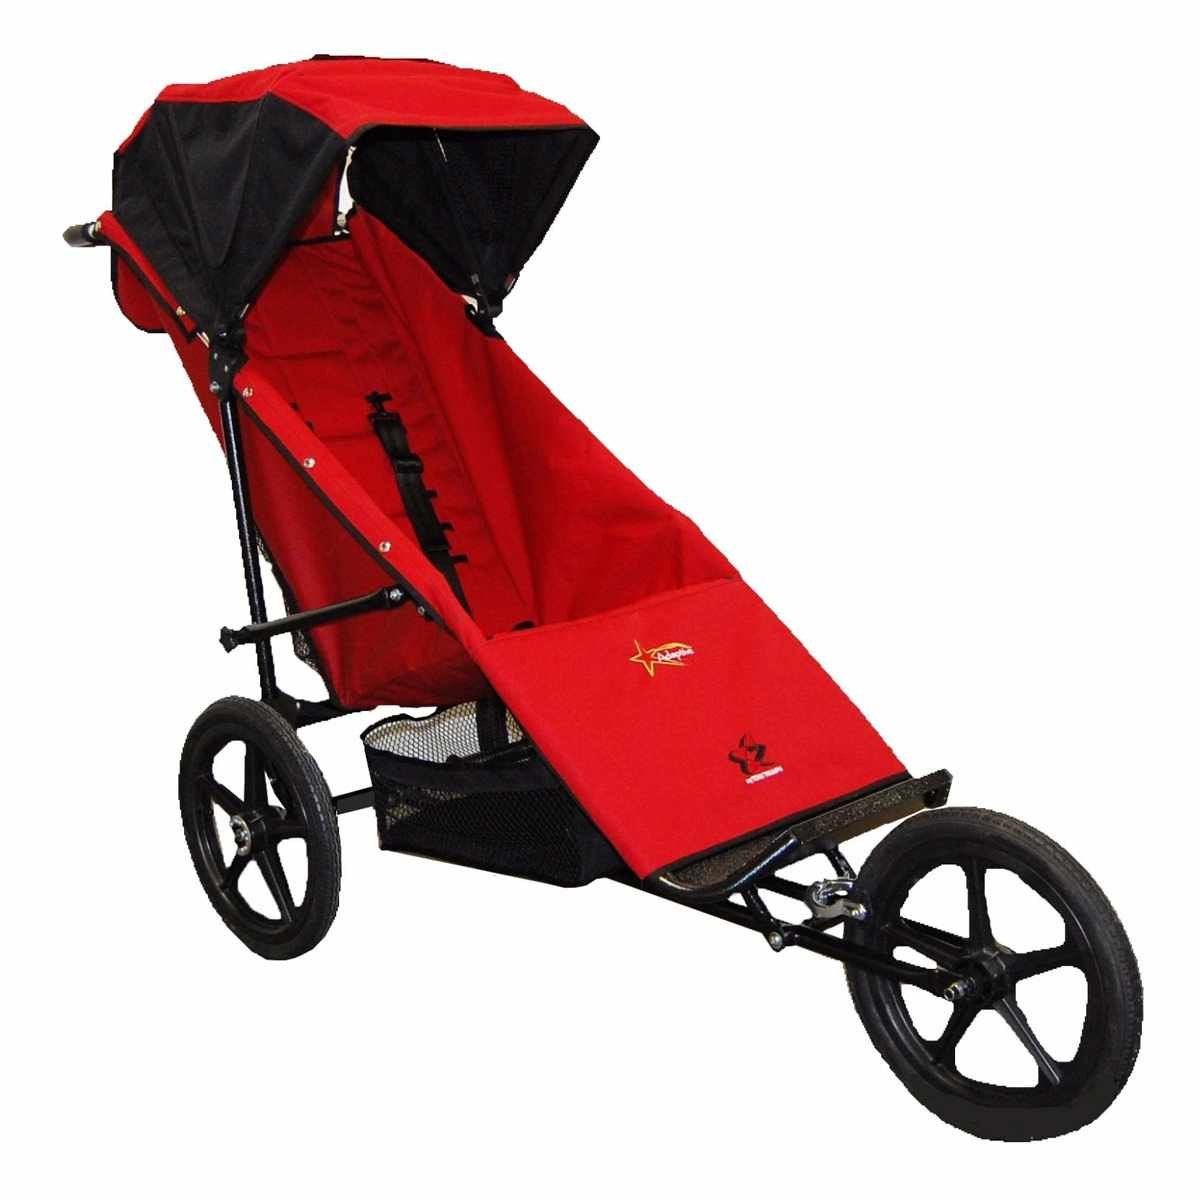 Adaptive star phoenix push chair - Red